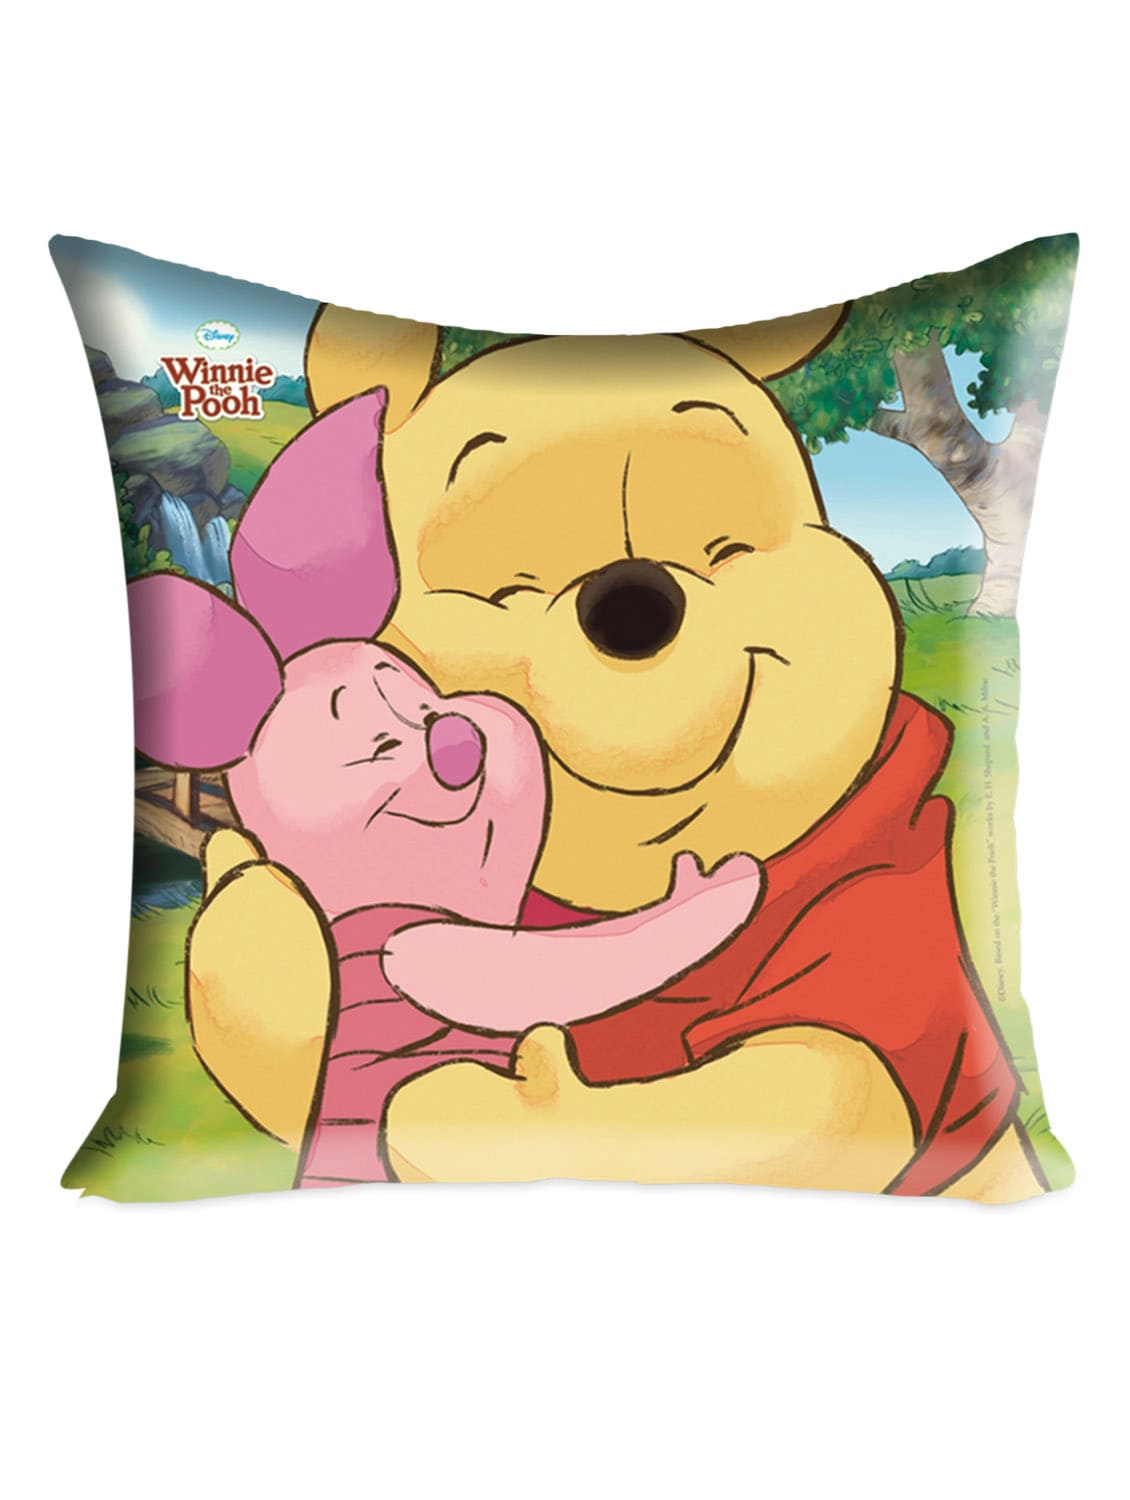 12c41235b744 Buy Disney Winnie The Pooh Cushion Cover for Unisex from Disney for ₹199 at  0% off